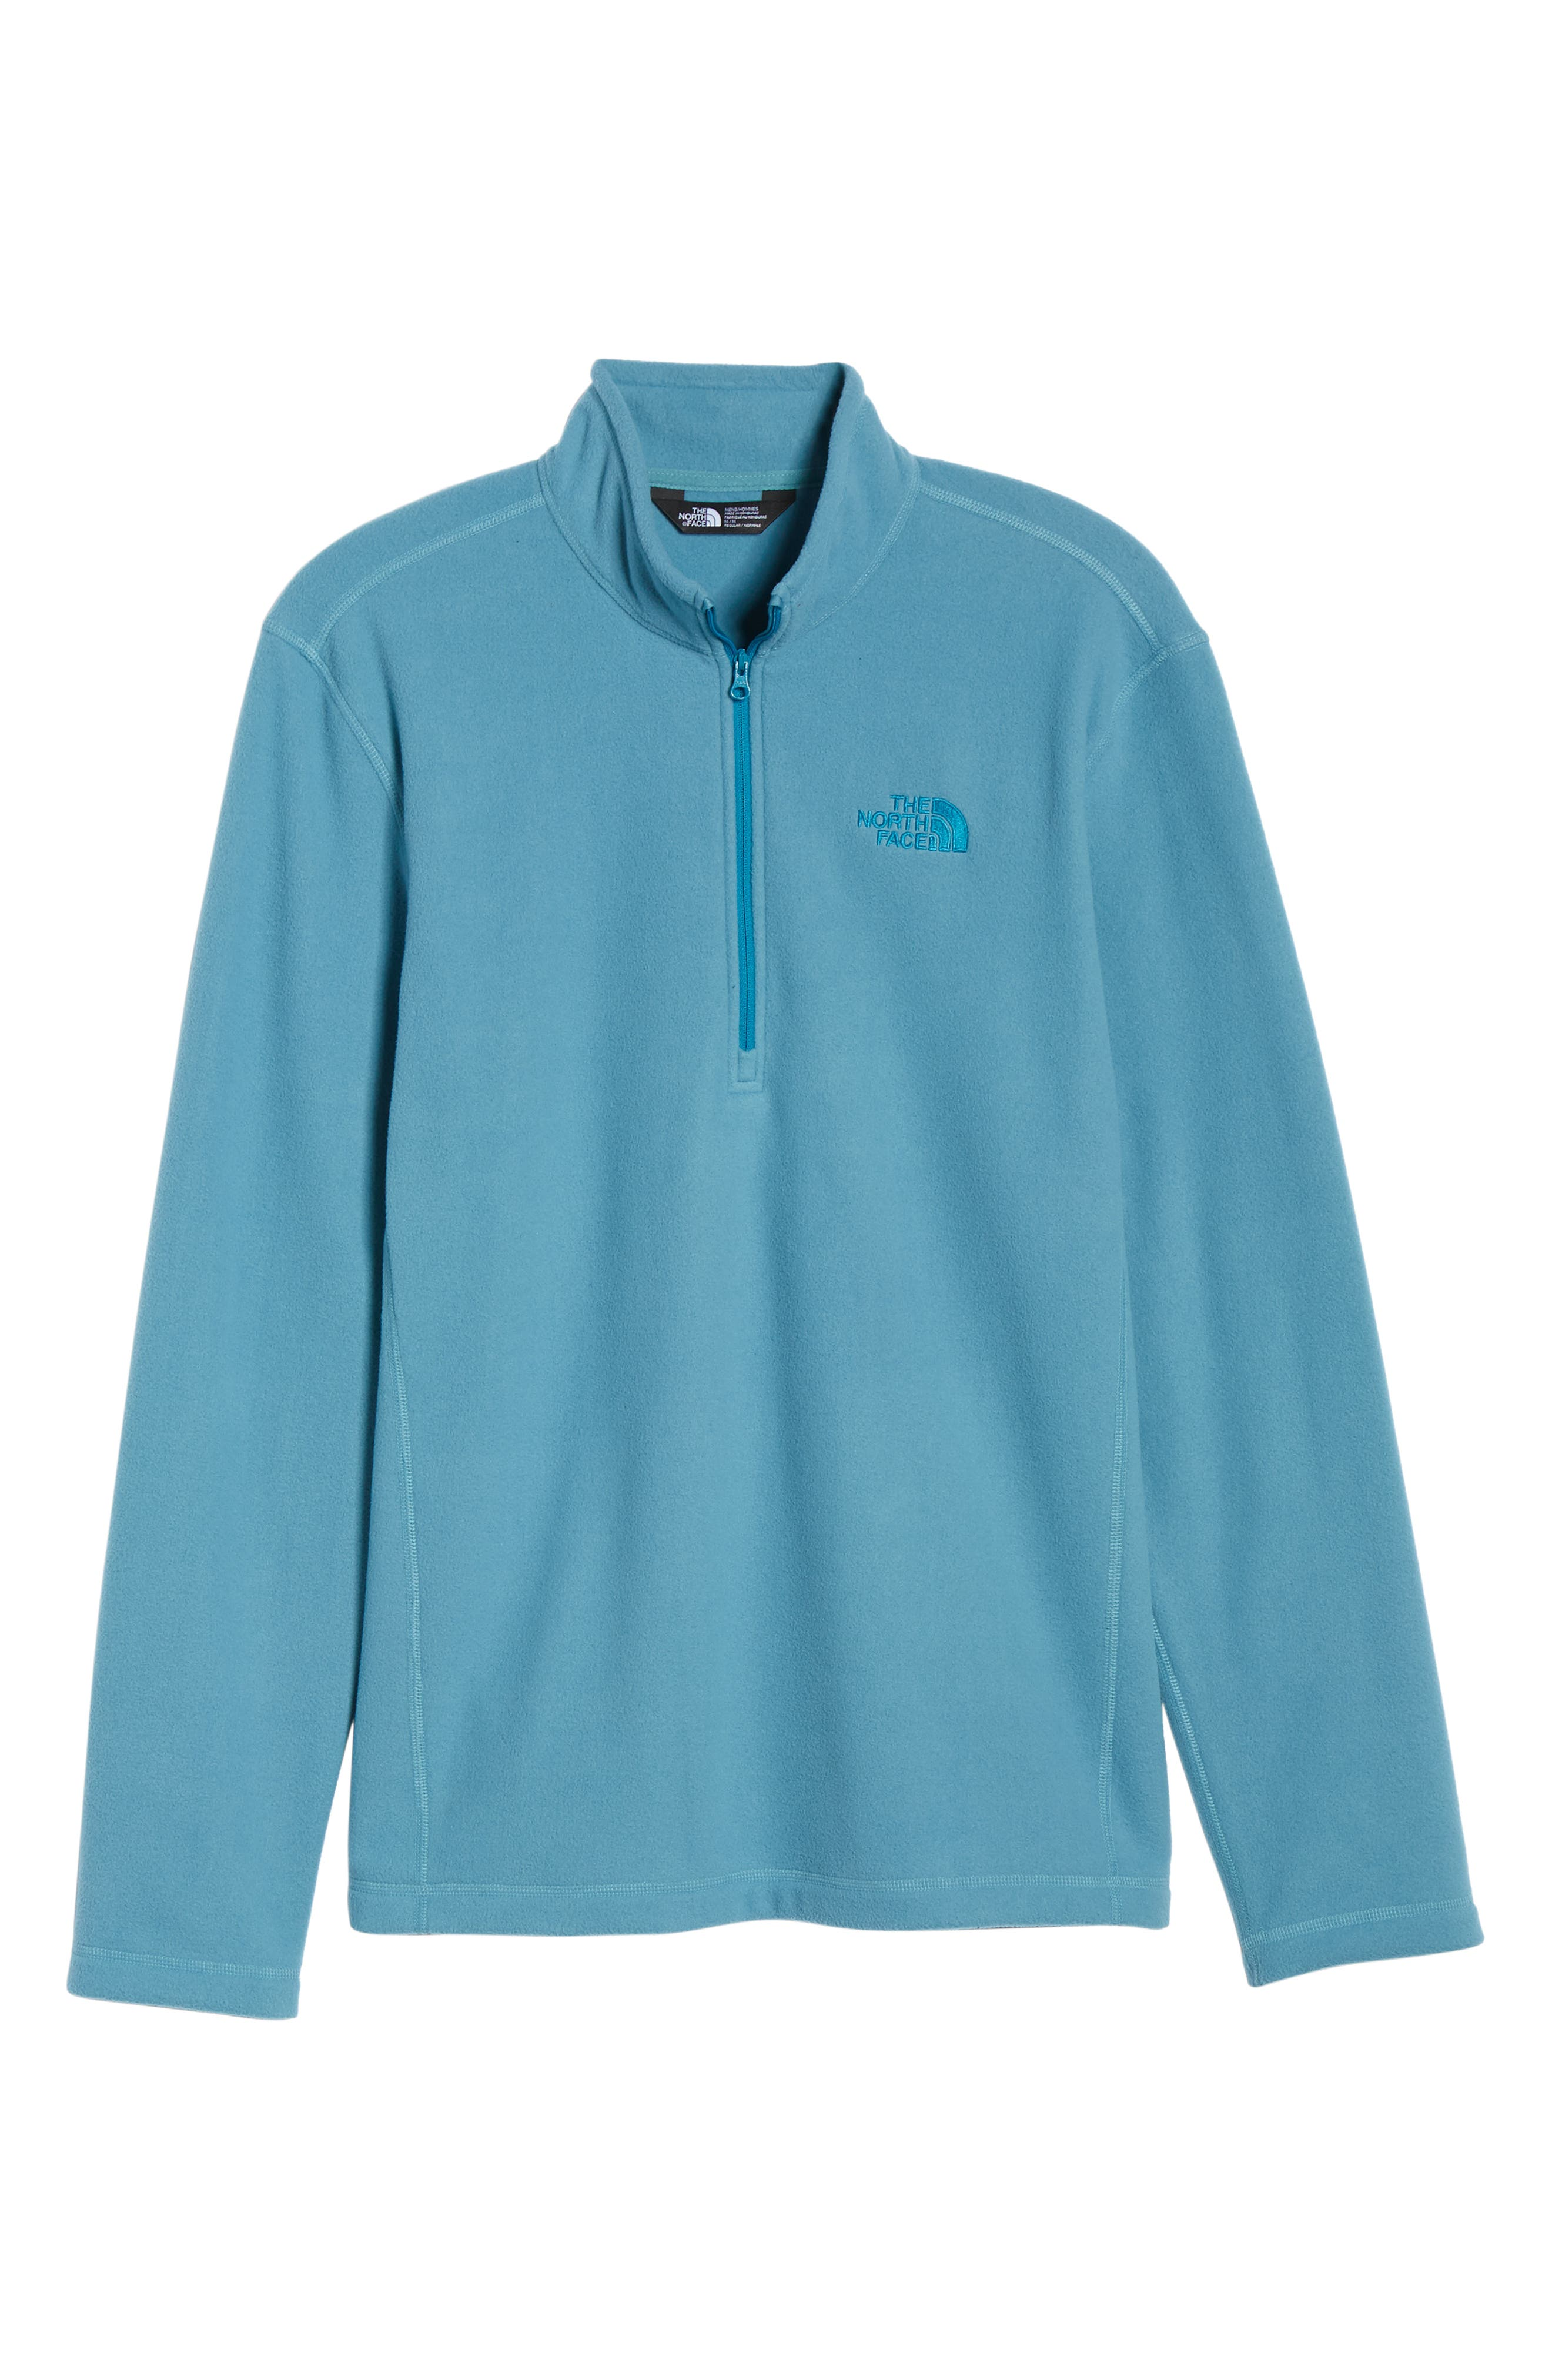 THE NORTH FACE, 'TKA 100 Glacier' Quarter Zip Fleece Pullover, Alternate thumbnail 7, color, AZTEC BLUE